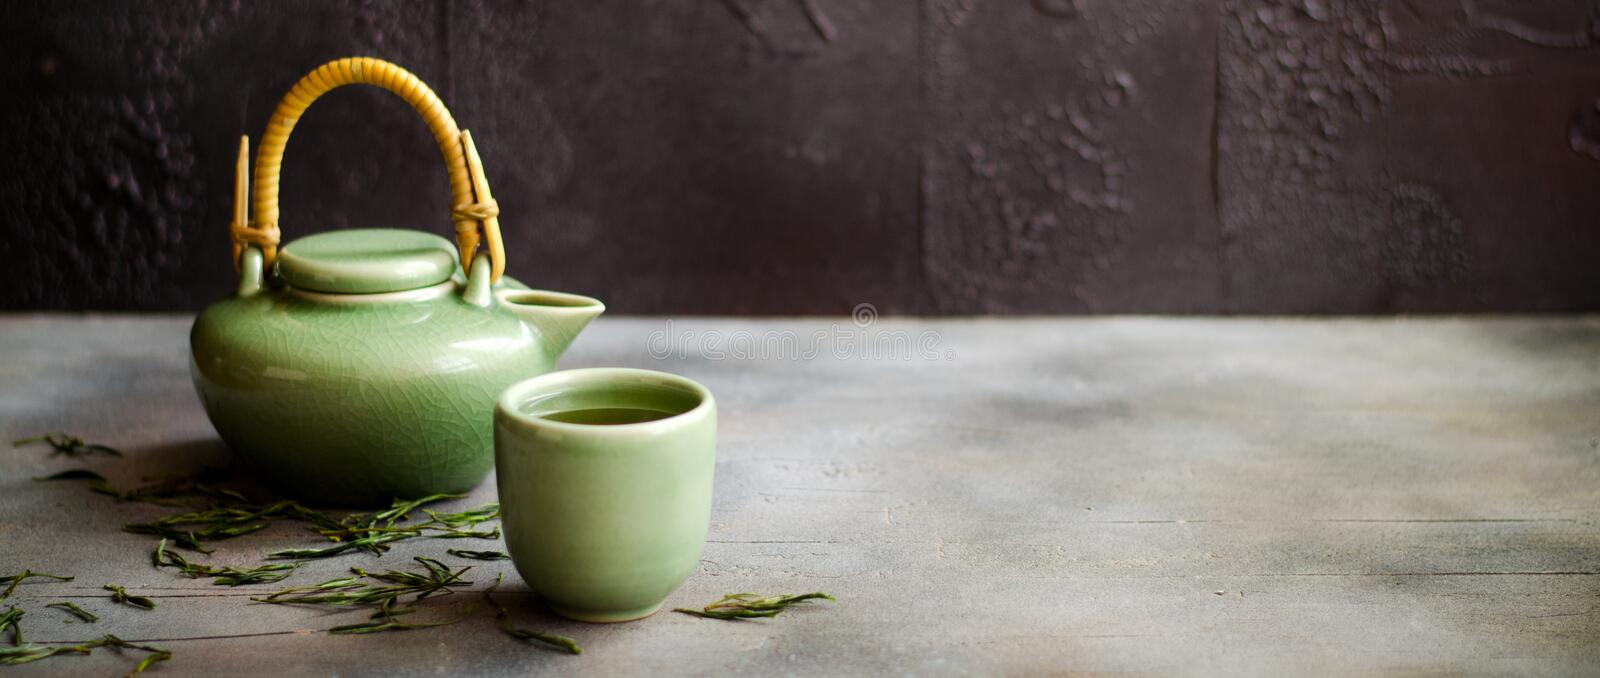 Chinese green tea in teapot on dark background royalty free stock photos